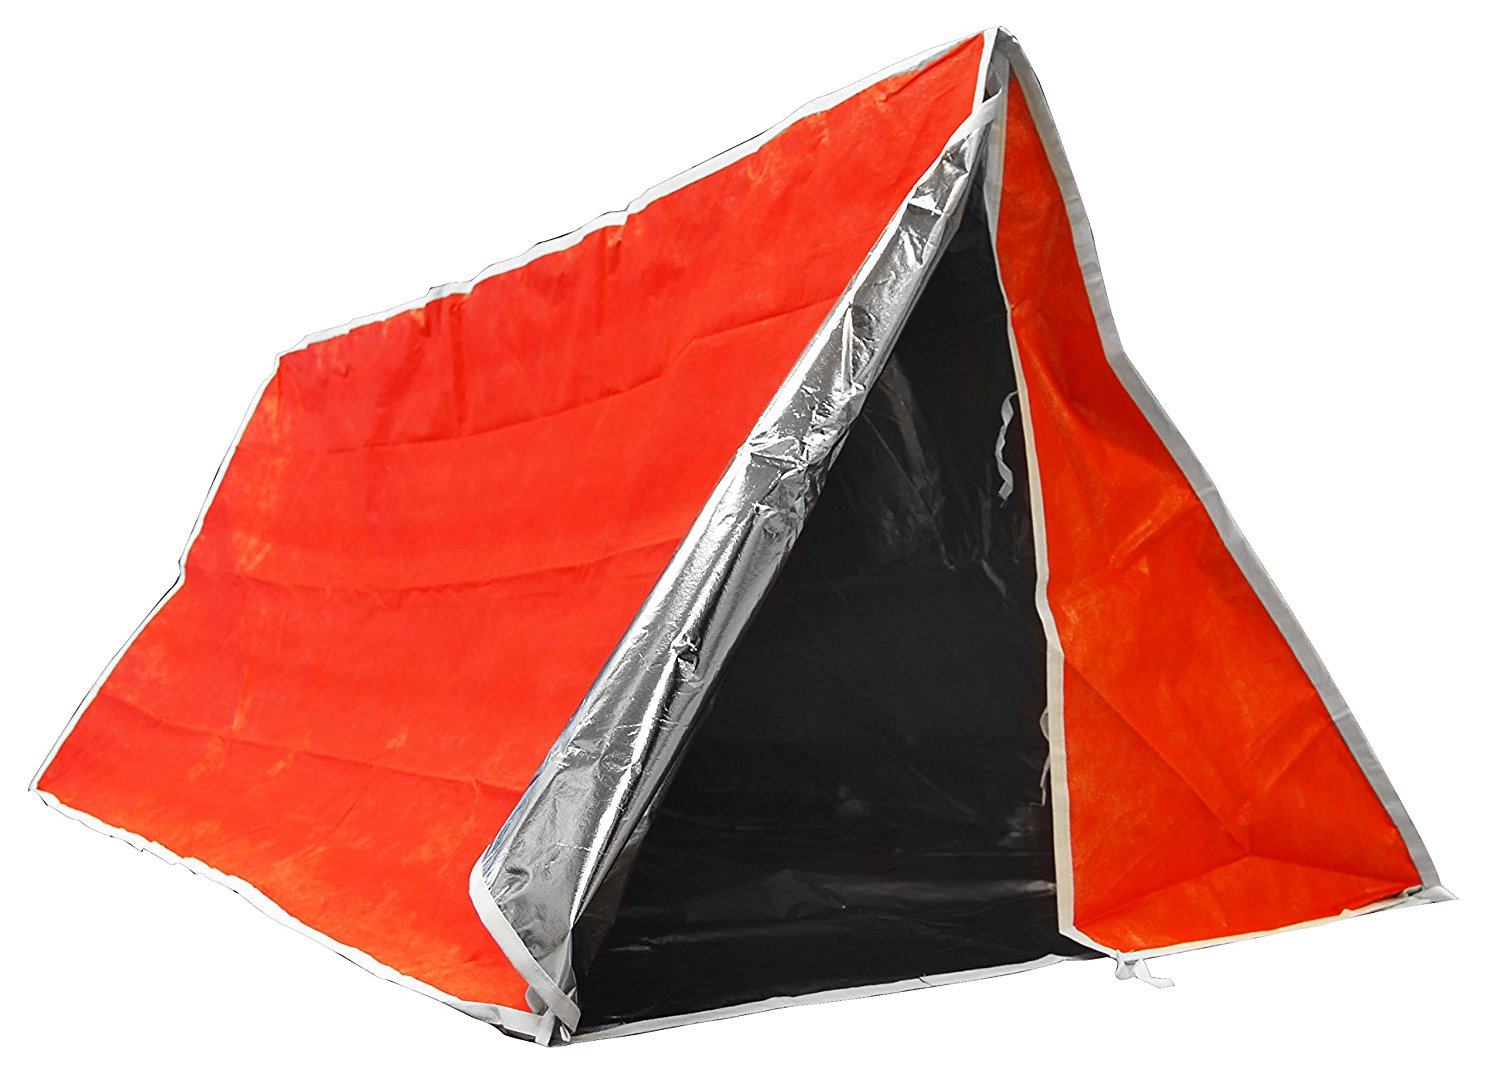 main image  sc 1 st  eBay & Outdoor Tube Tent-Aluminum Coated Interior Insulates Body Heat for ...